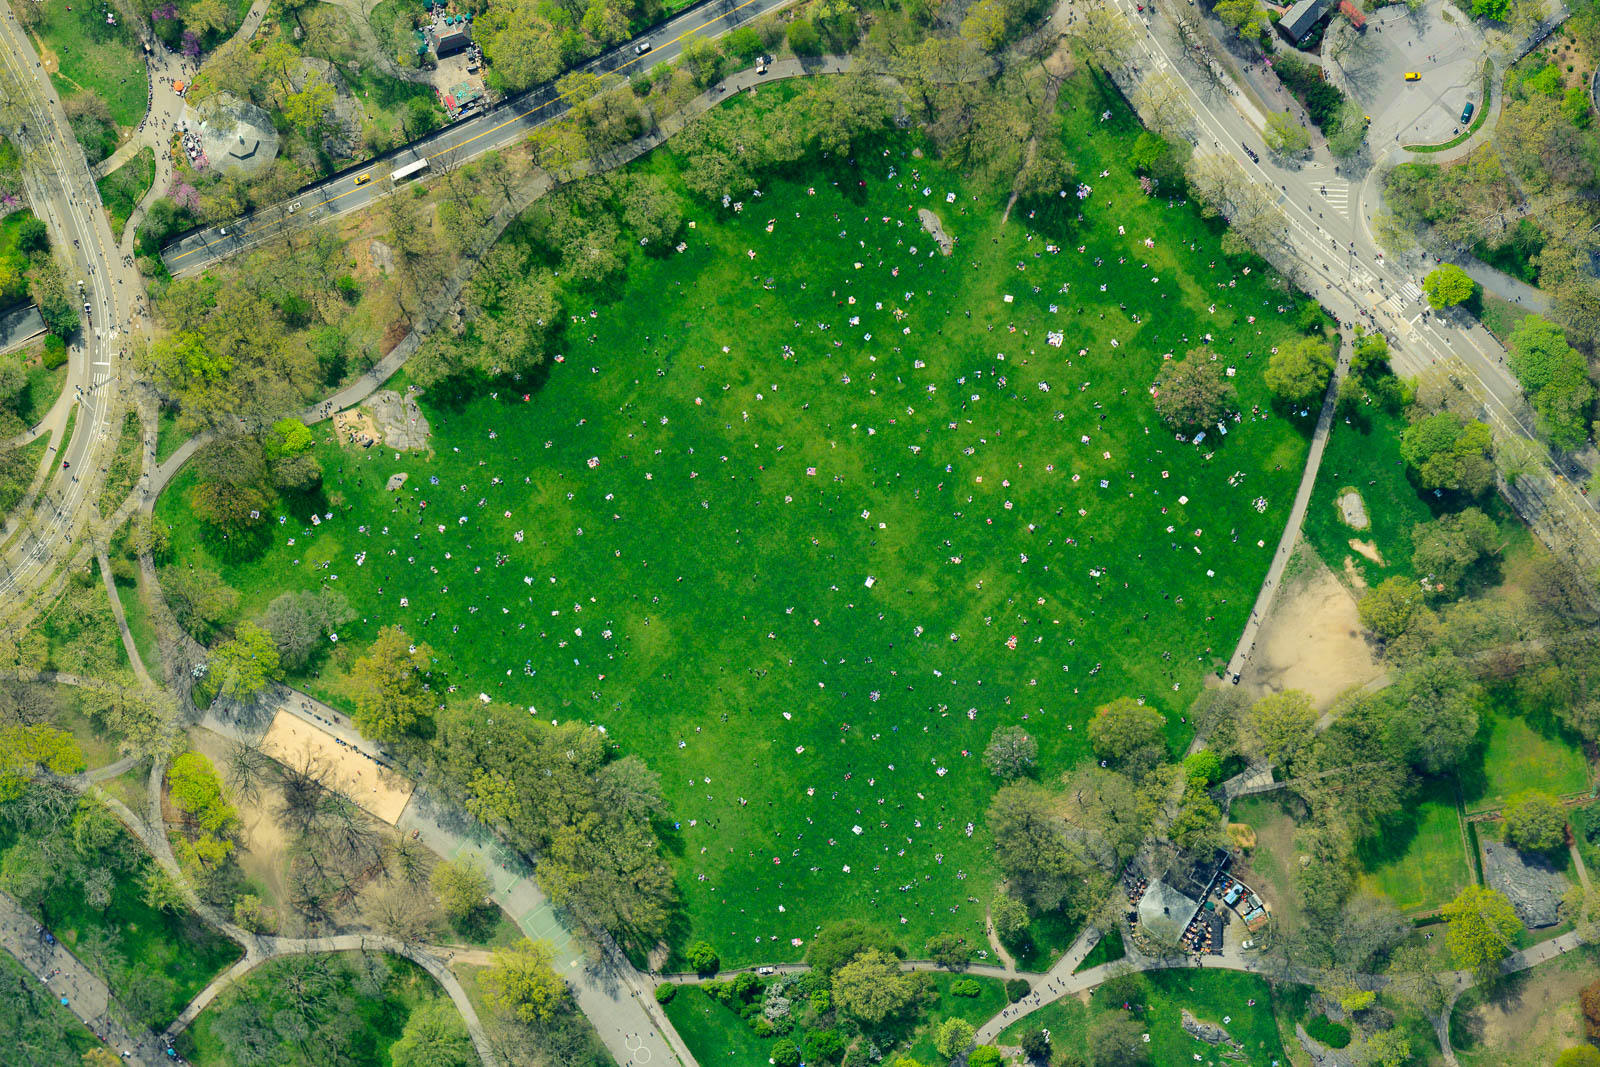 Central Park's Sheep Meadow filled with Sunbathers on the Beautiful Spring Day